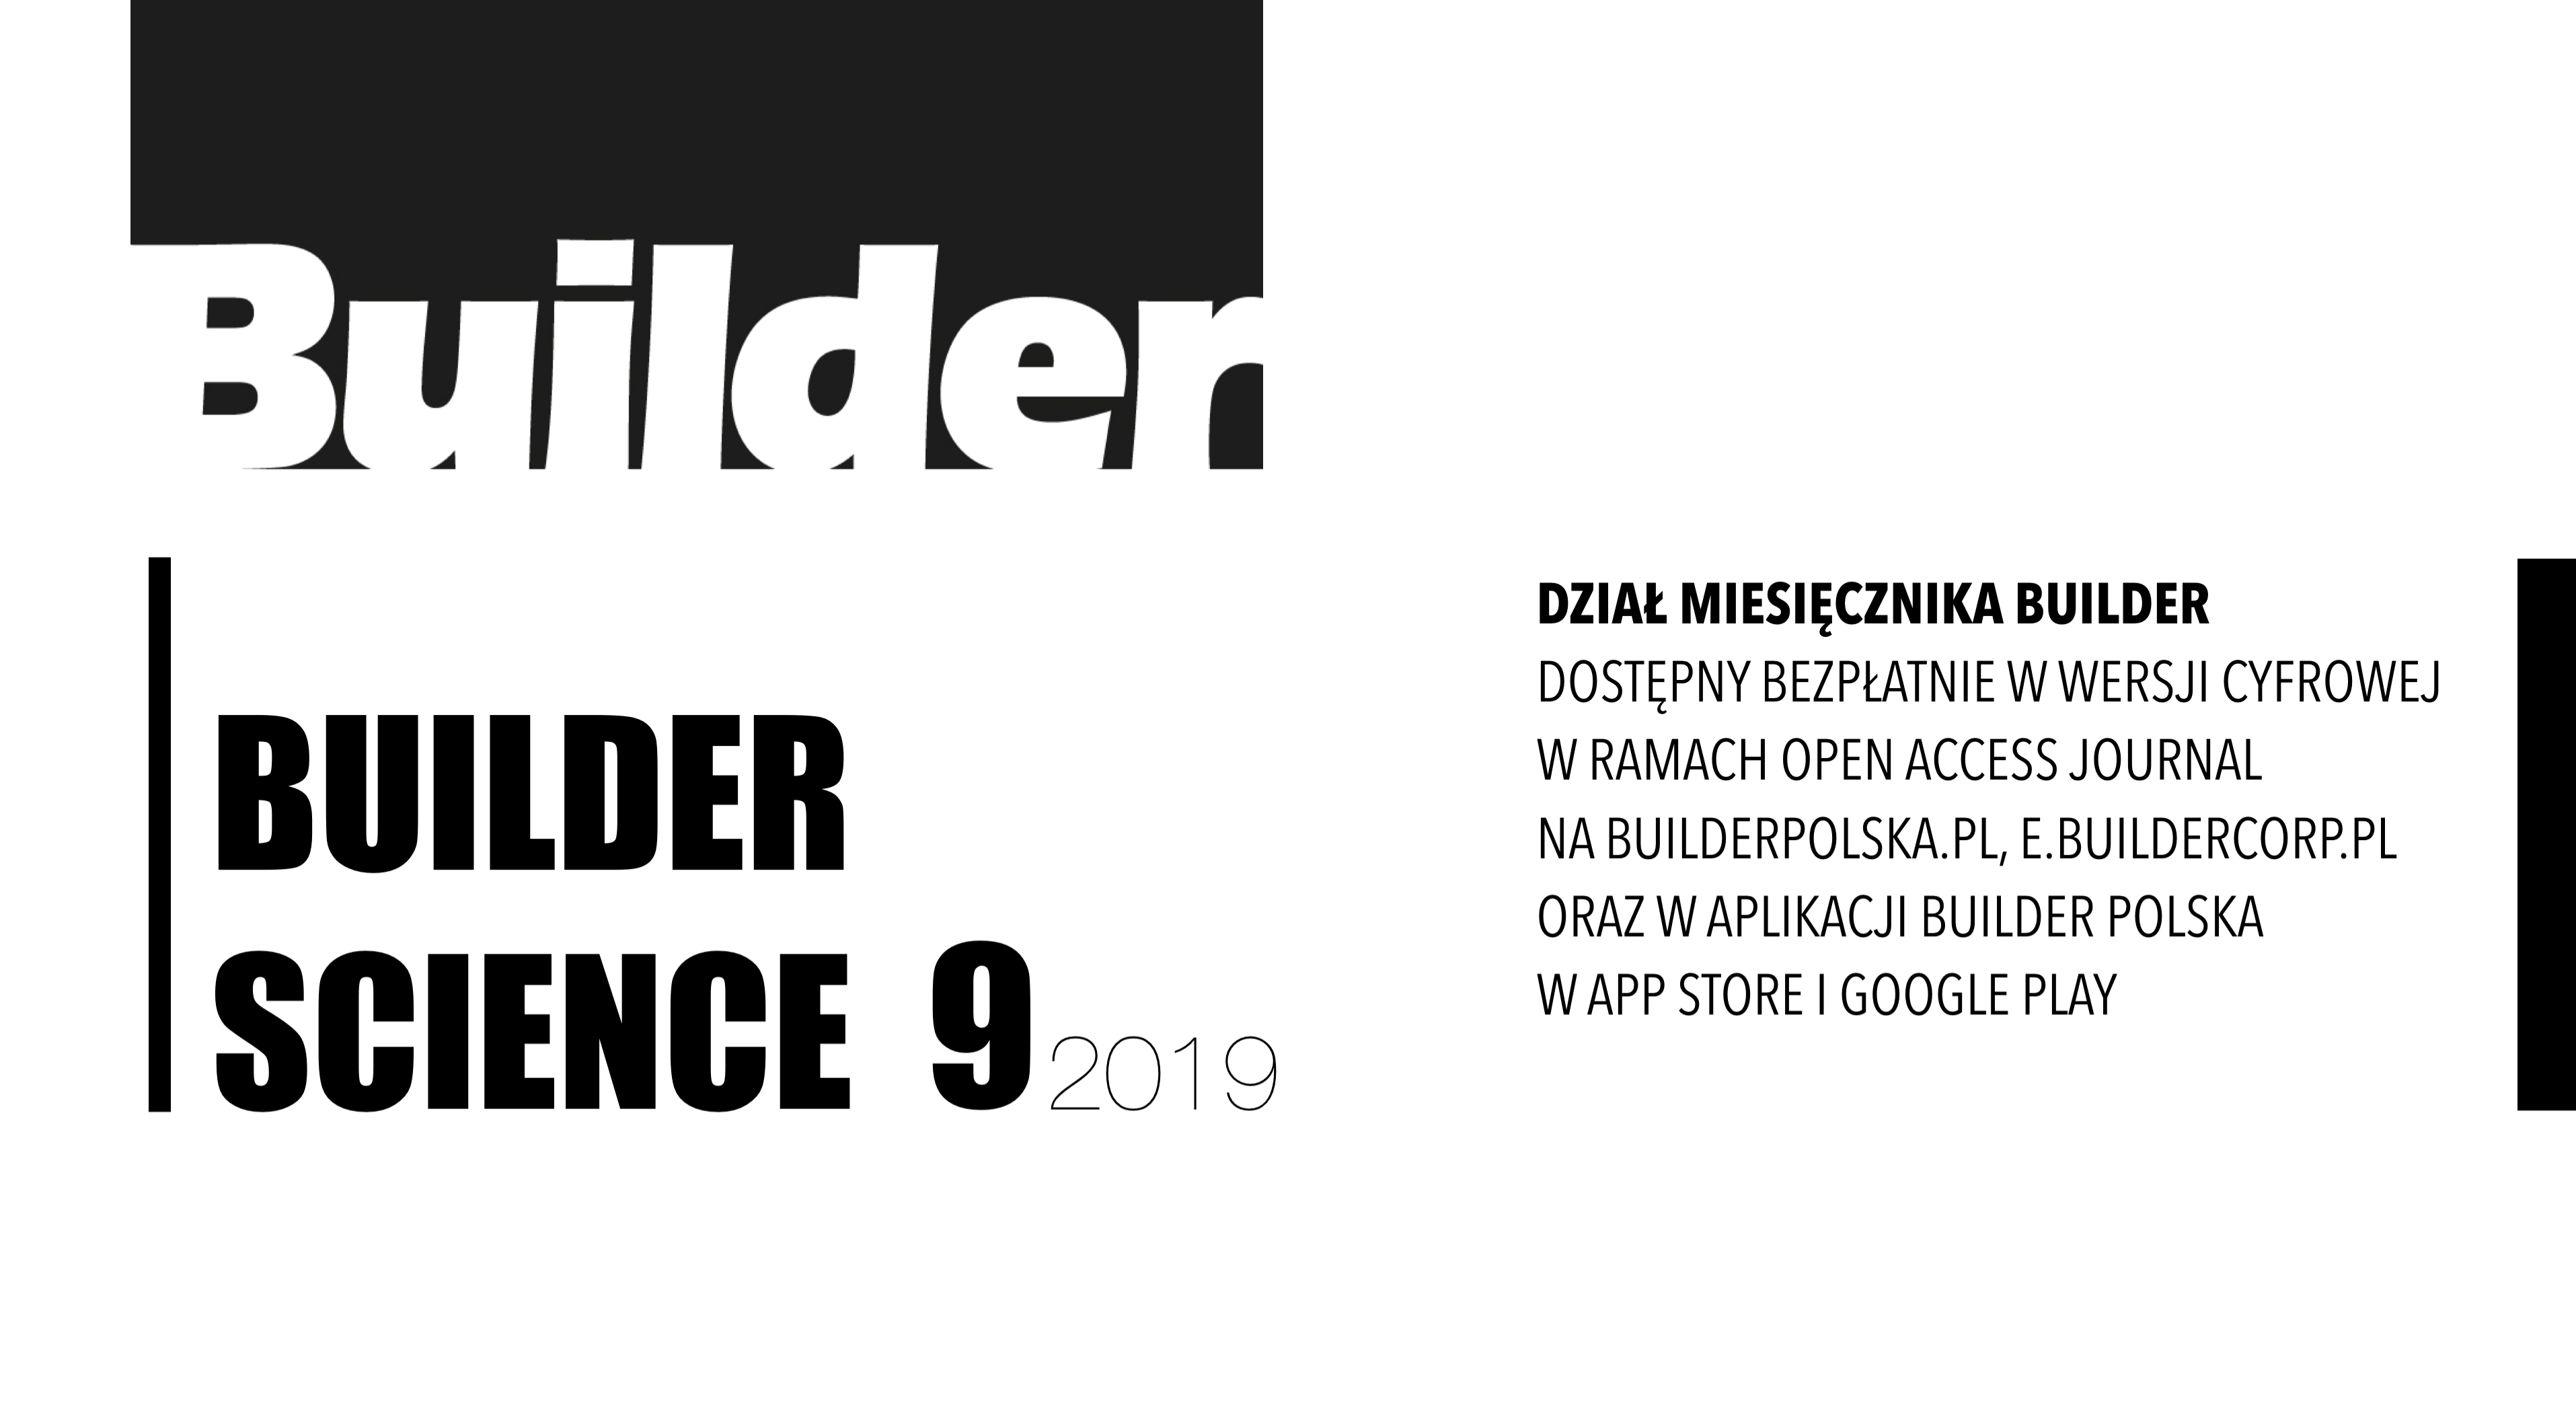 BUILDER SCIENCE 09.2019